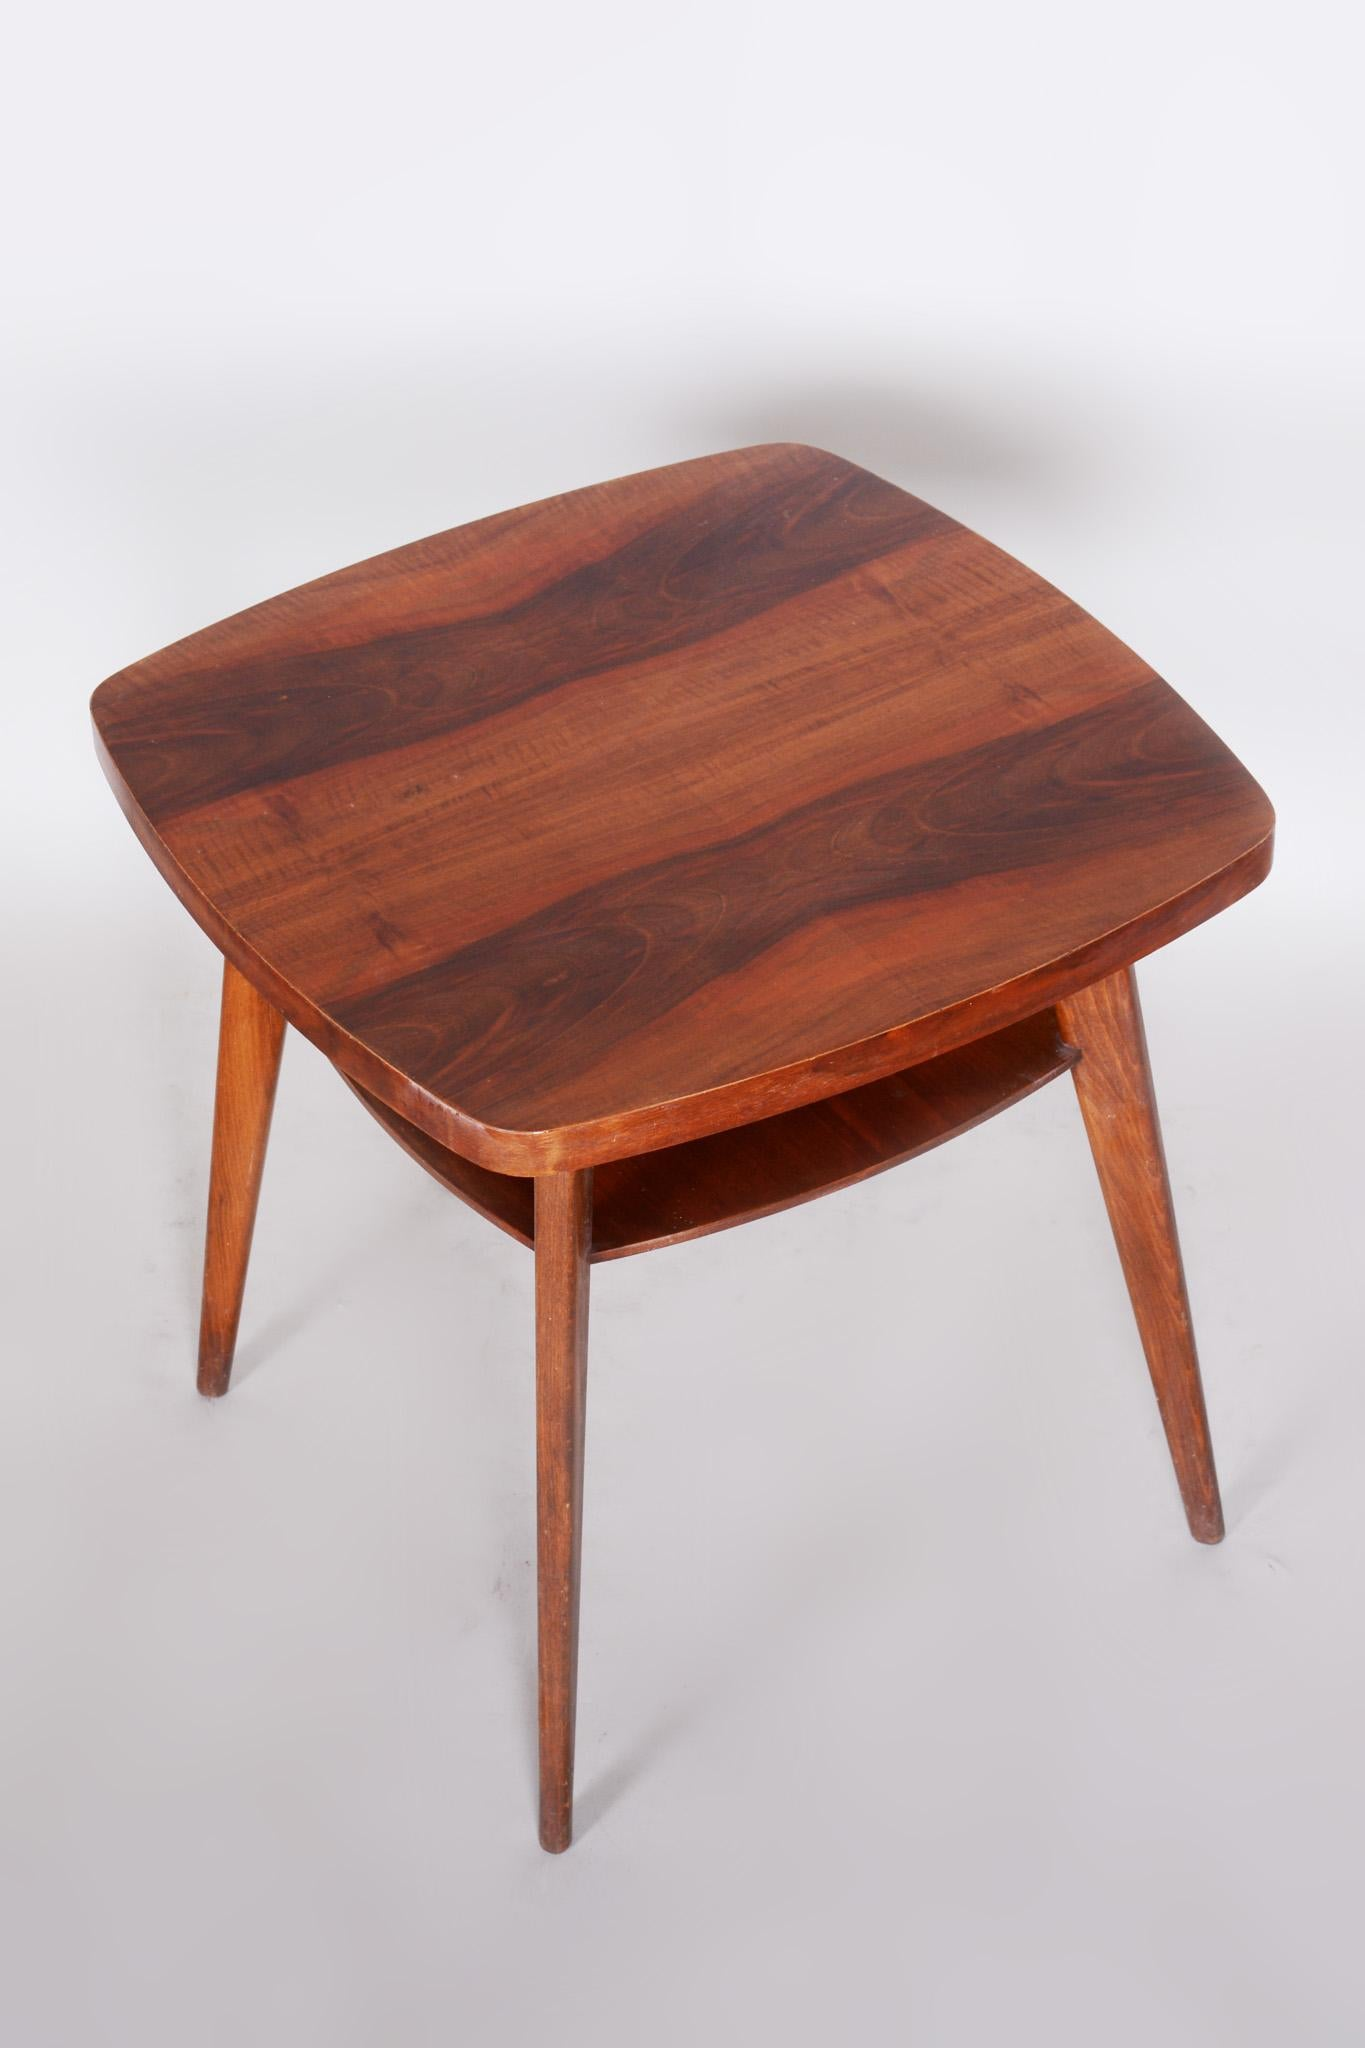 small walnut coffee table czech midcentury preserved original condition 1950s